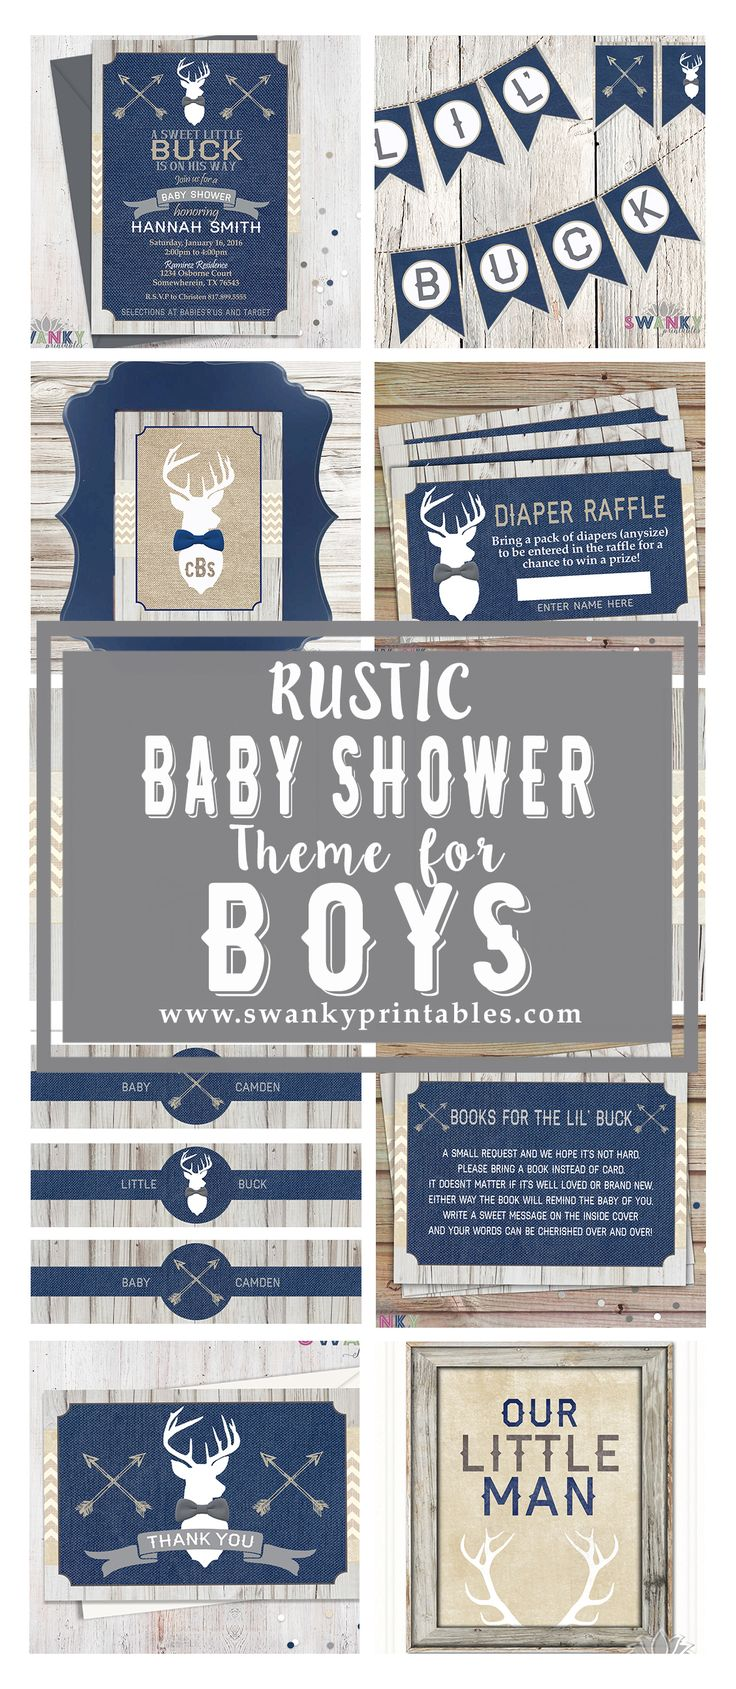 Rustic Deer Baby Shower for Boys. Arrows and Deer Baby Shower Theme. Navy, Gray and Tan Baby Shower. Rustic Burlap Baby Shower Invitations www.swankyprintables.com